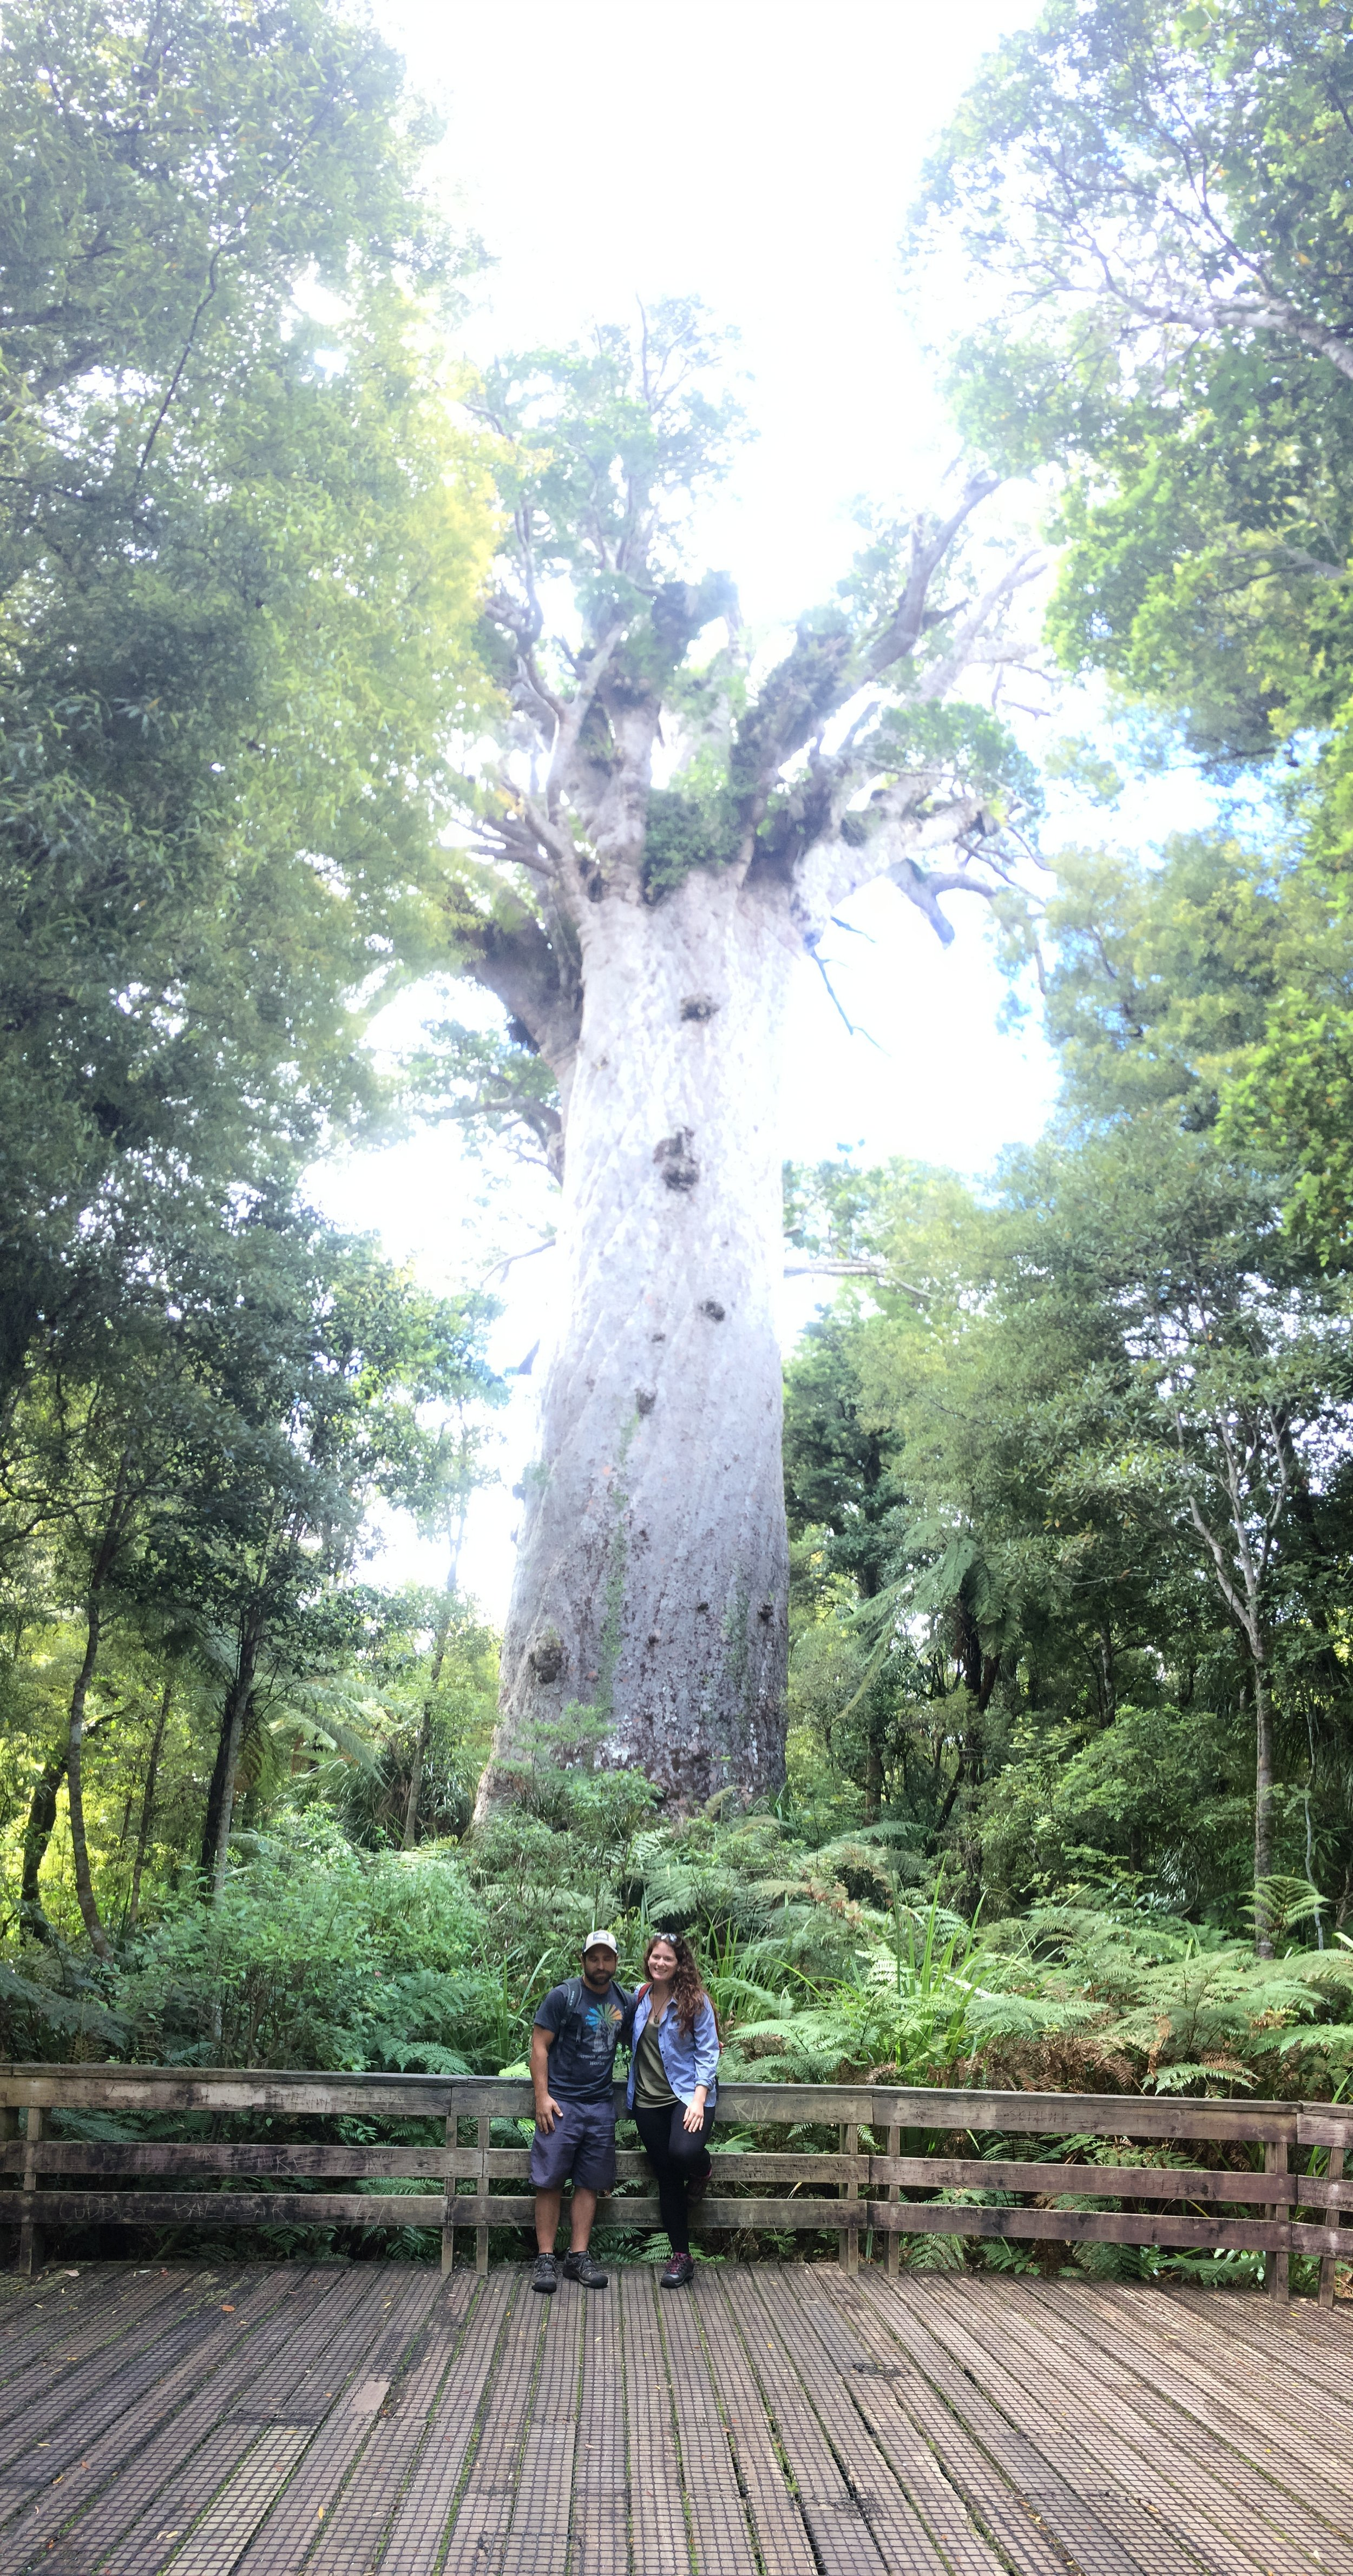 Visiting with Tane Mahuta (51 meters high, 13.8 meter trunk girth)- this is one of the oldest Kauri trees!They built a beautiful boardwalk to it and then discovered there was an even older one much less accessible.